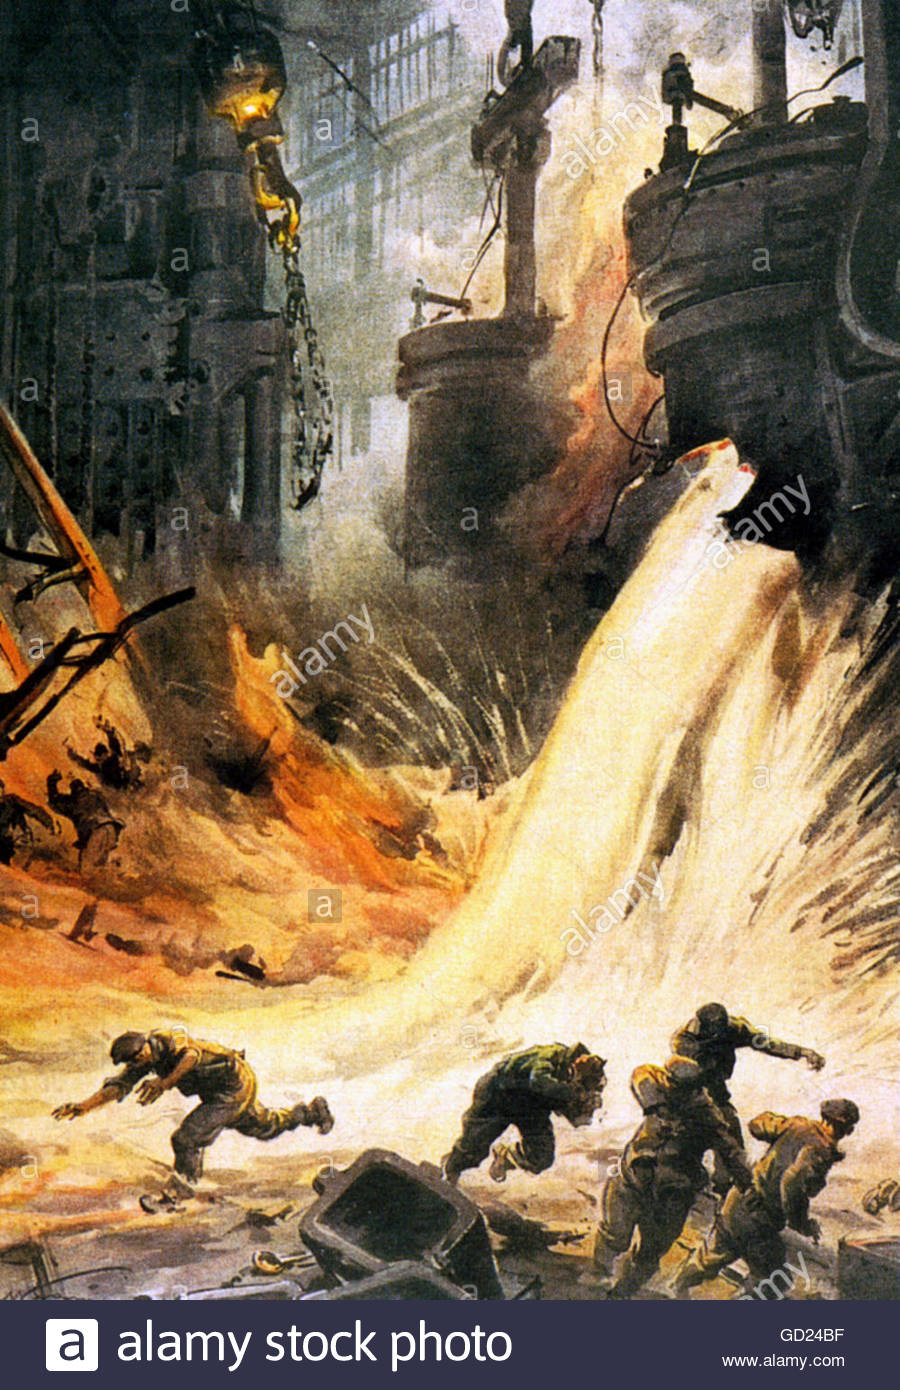 events, Second World War / WWII, aerial warfare, Italian air raid on a British foundry, Italian illustration, 1940, - Stock Image